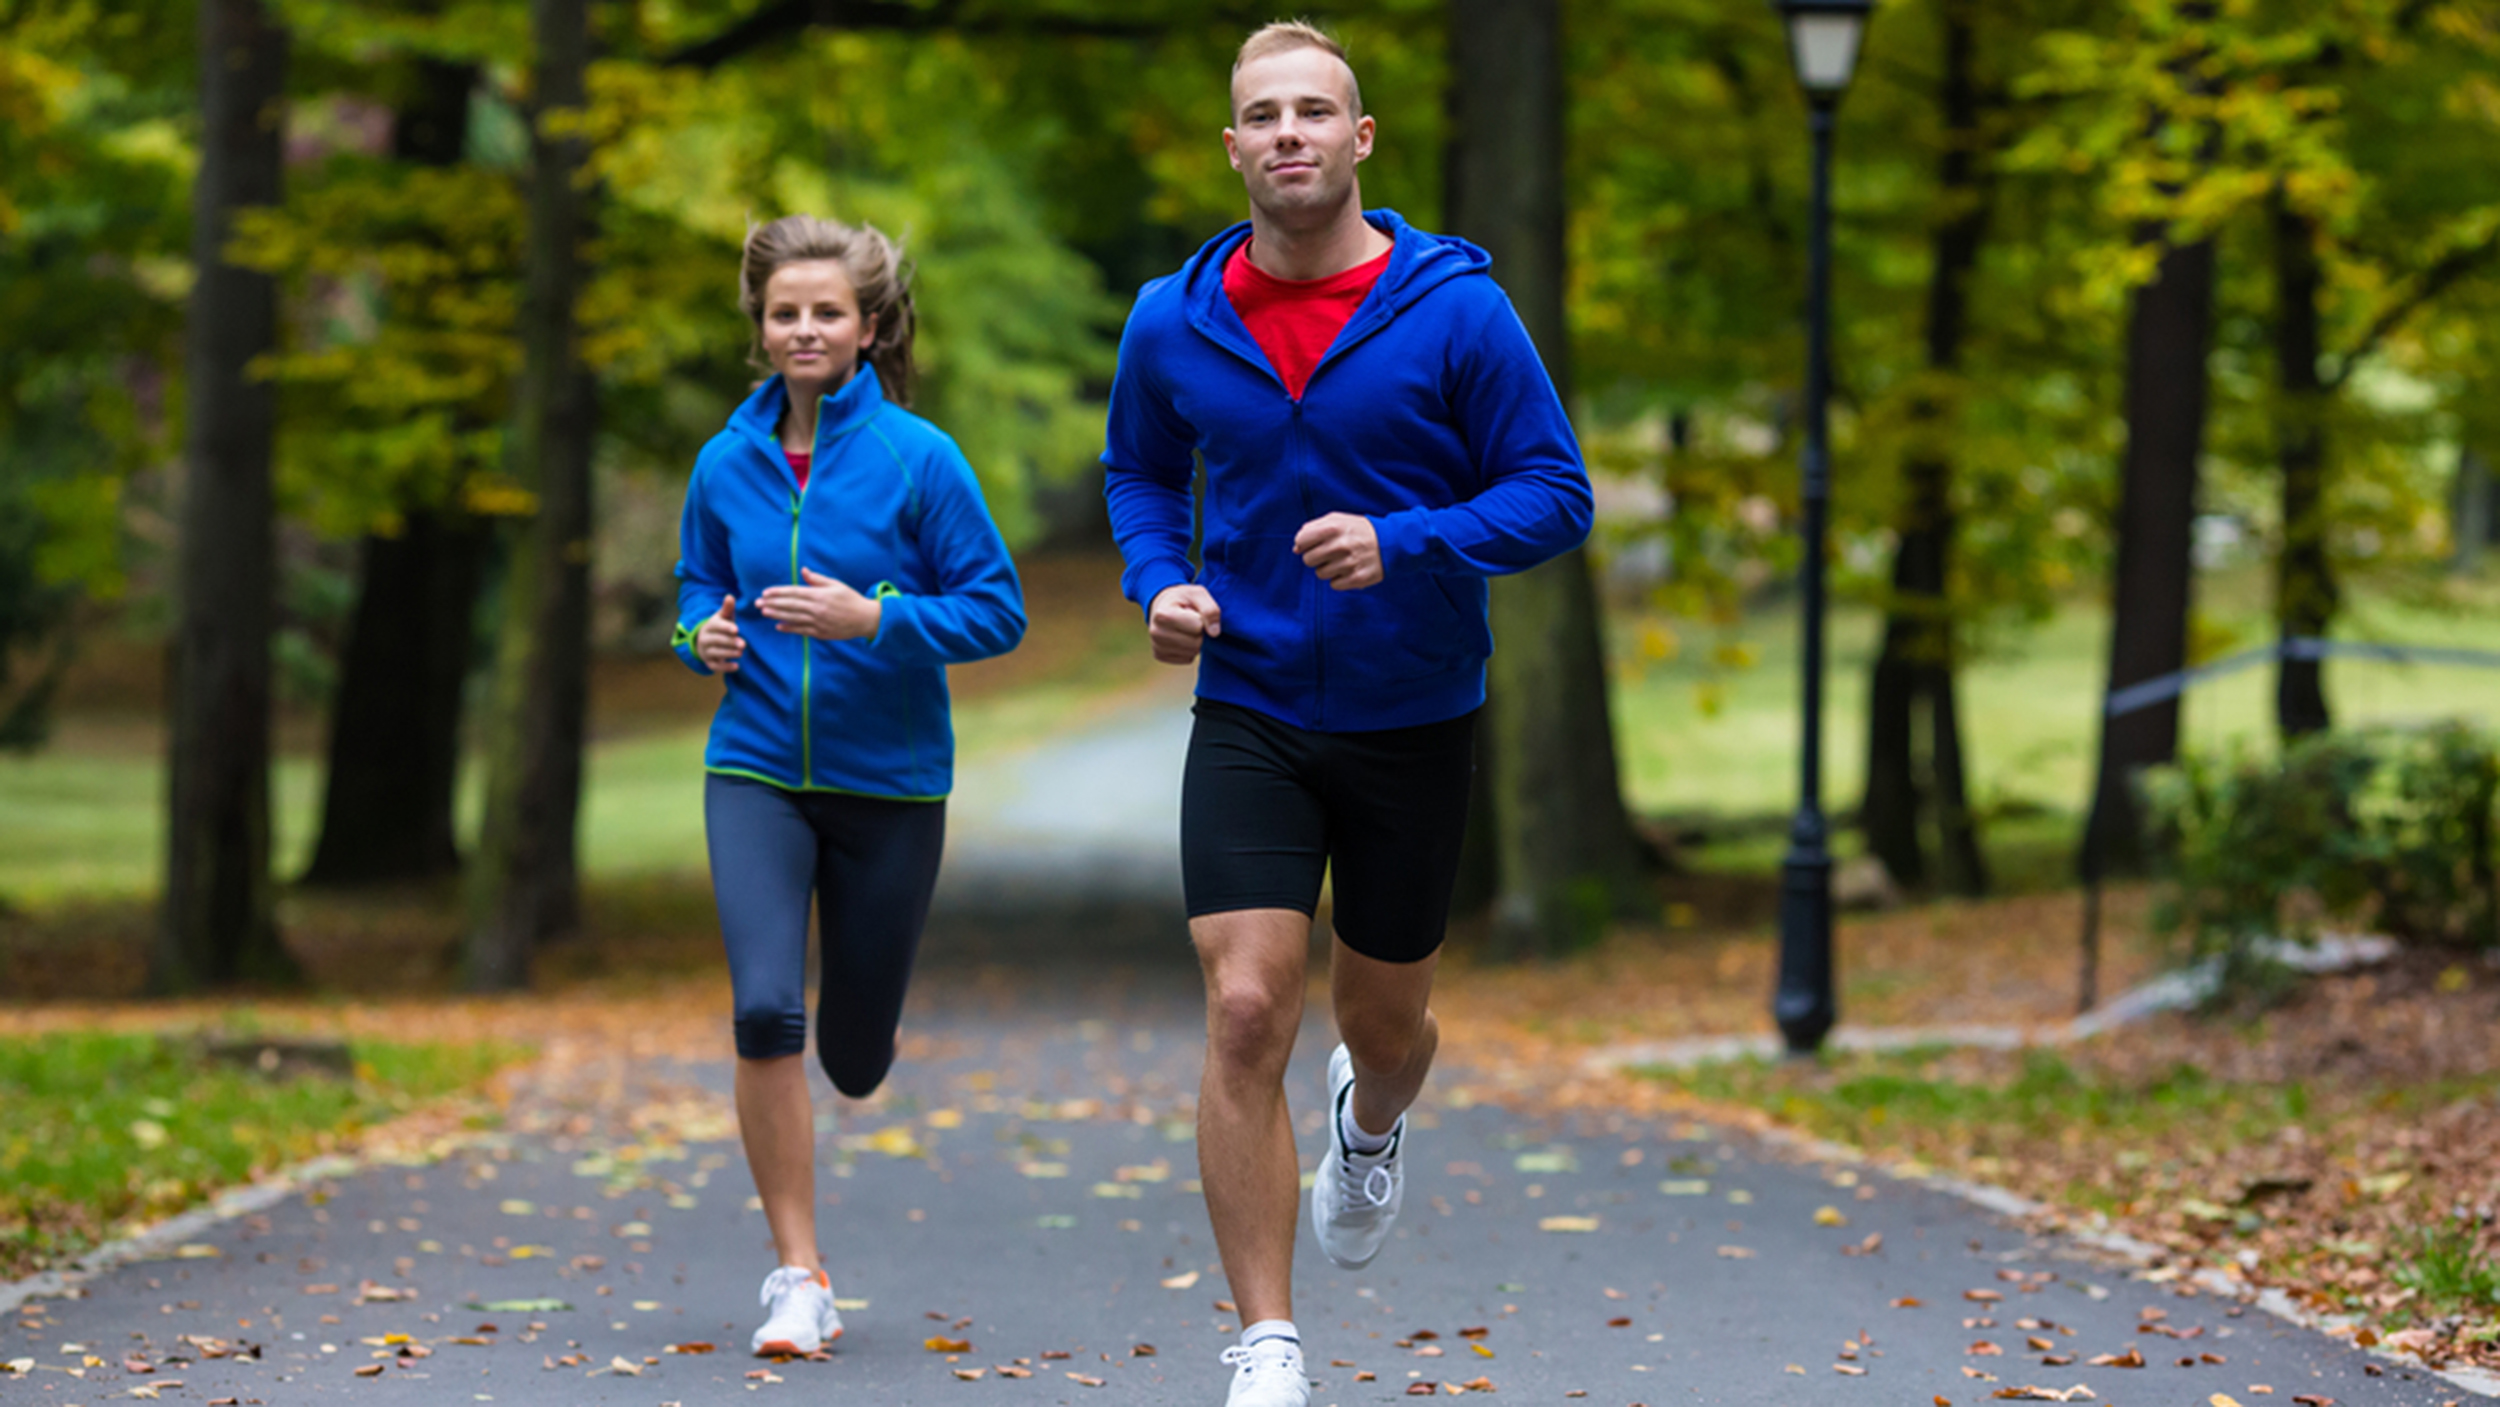 Exercise can take 10 years off your brain's age, new study shows